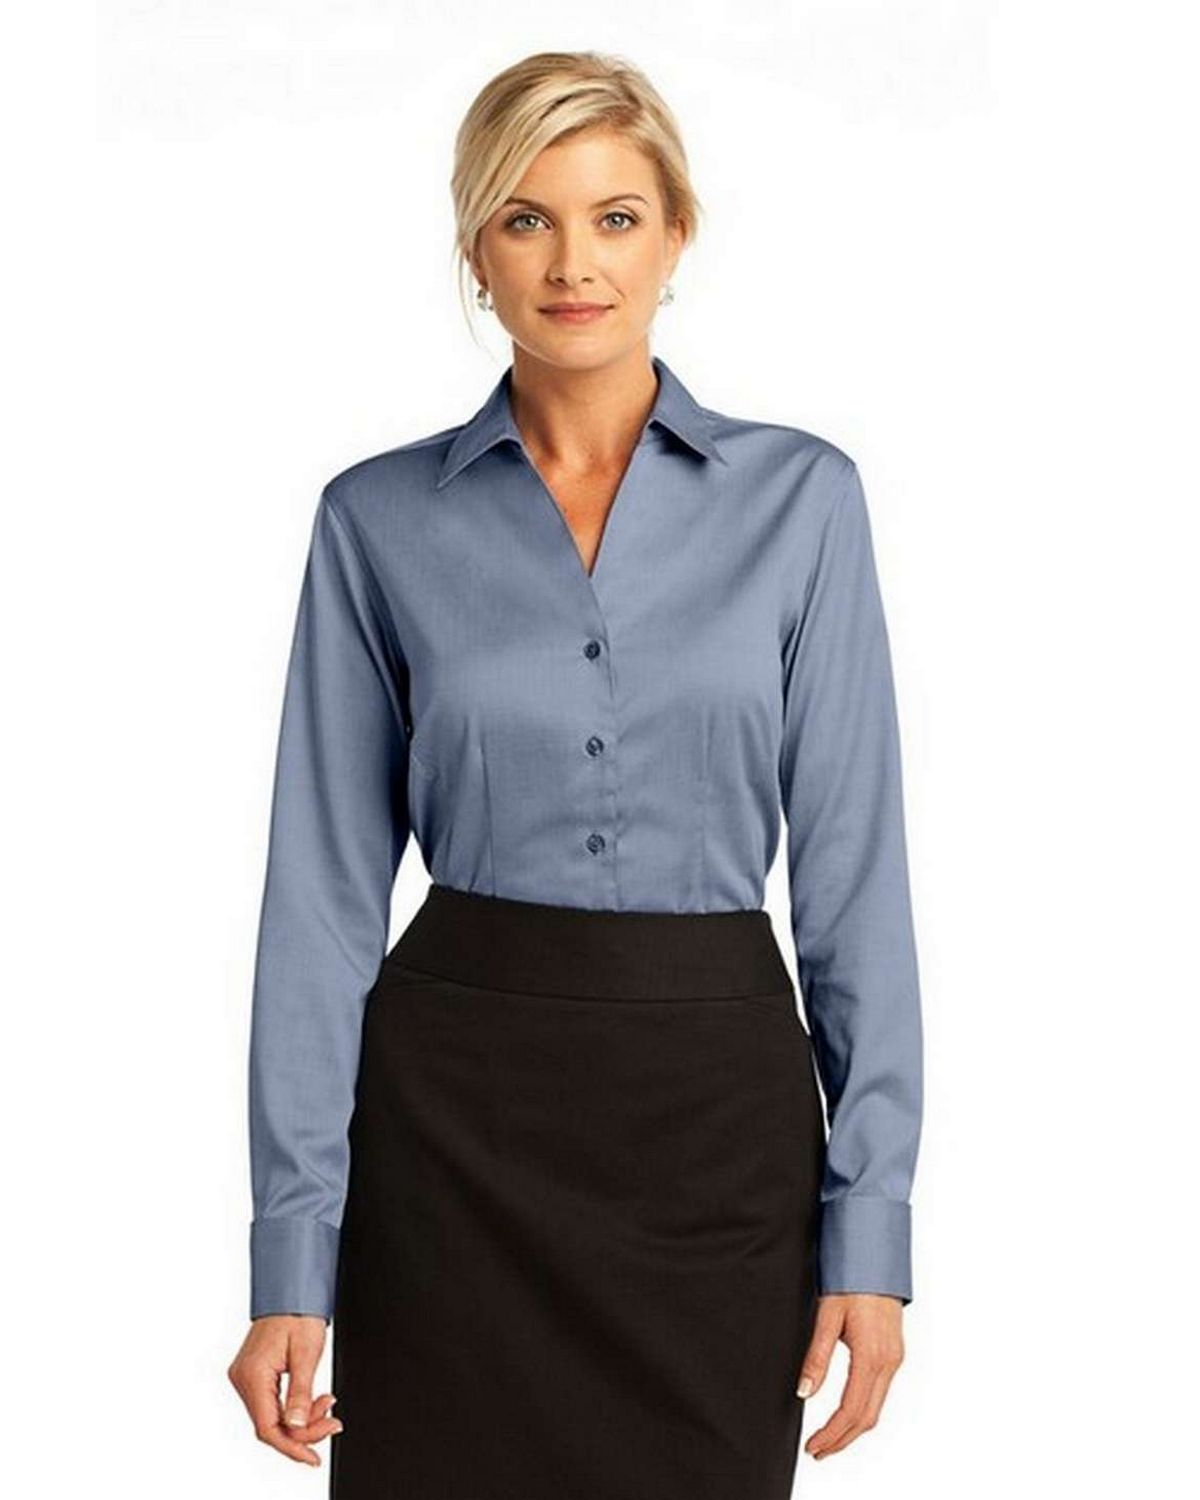 Red House RH63 Ladies Fitted Non-Iron Pin Oxford French Cuff Button Down